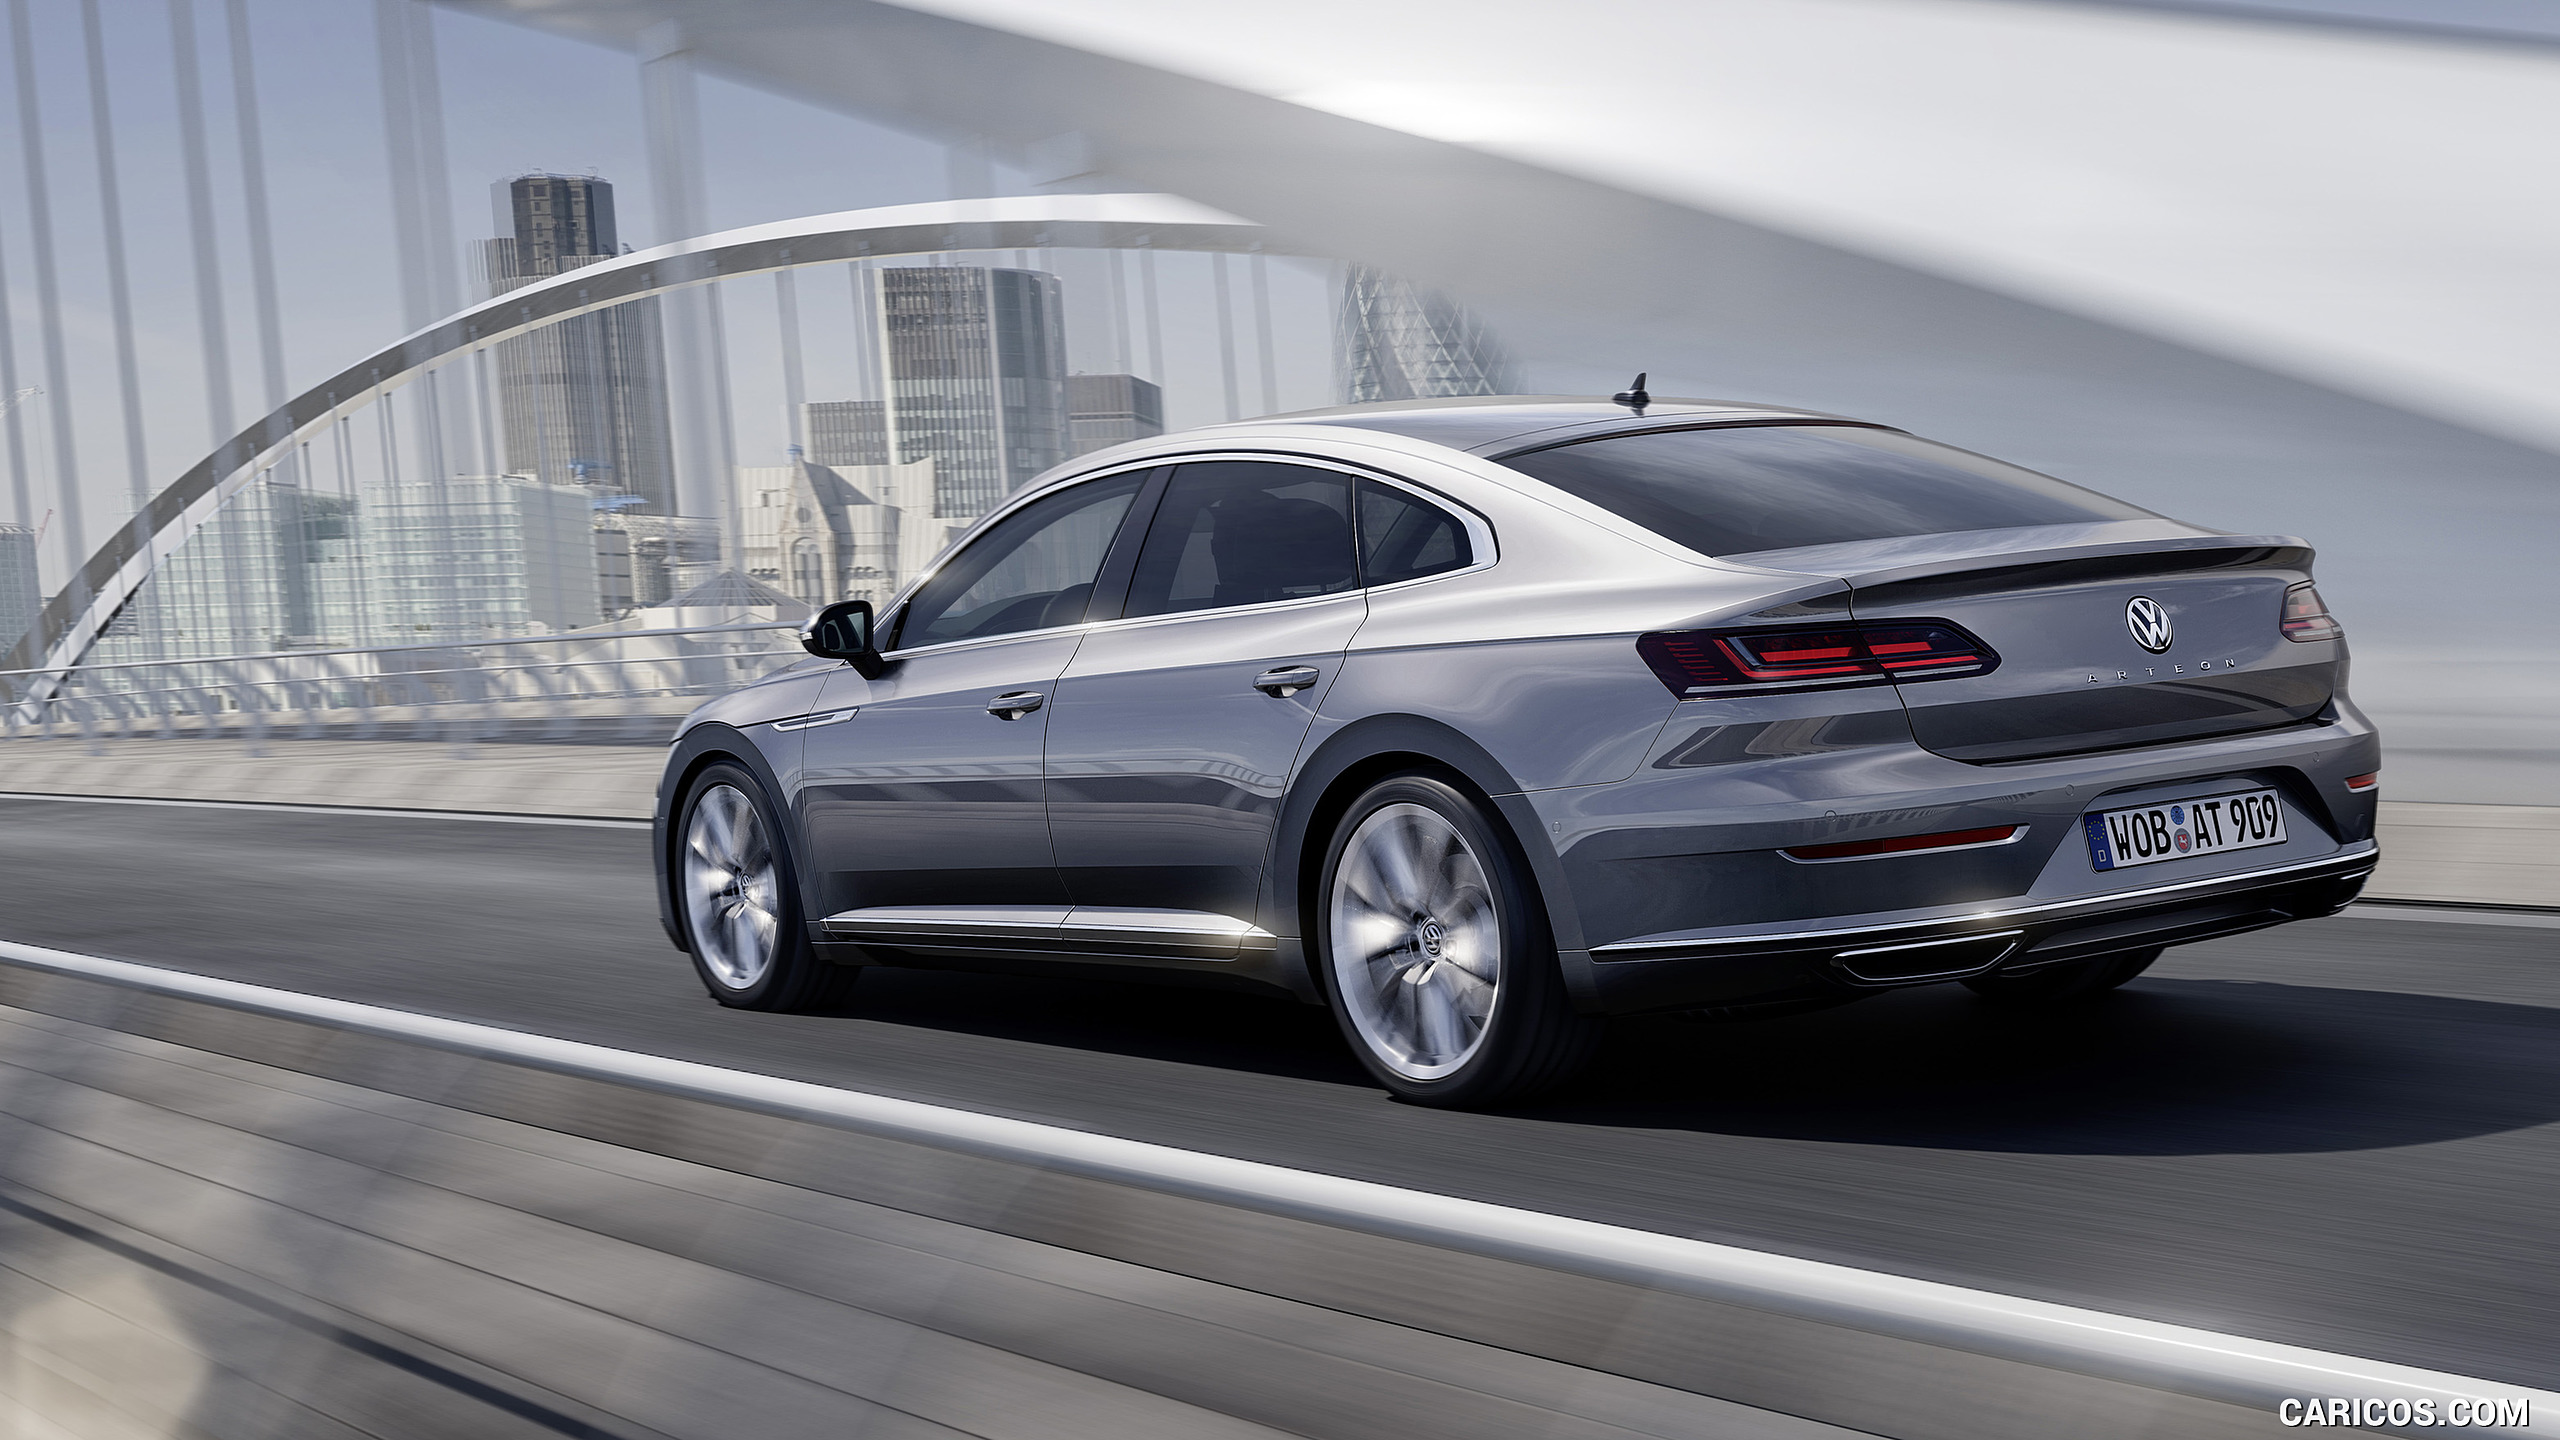 2560x1440 - Volkswagen Arteon Wallpapers 26